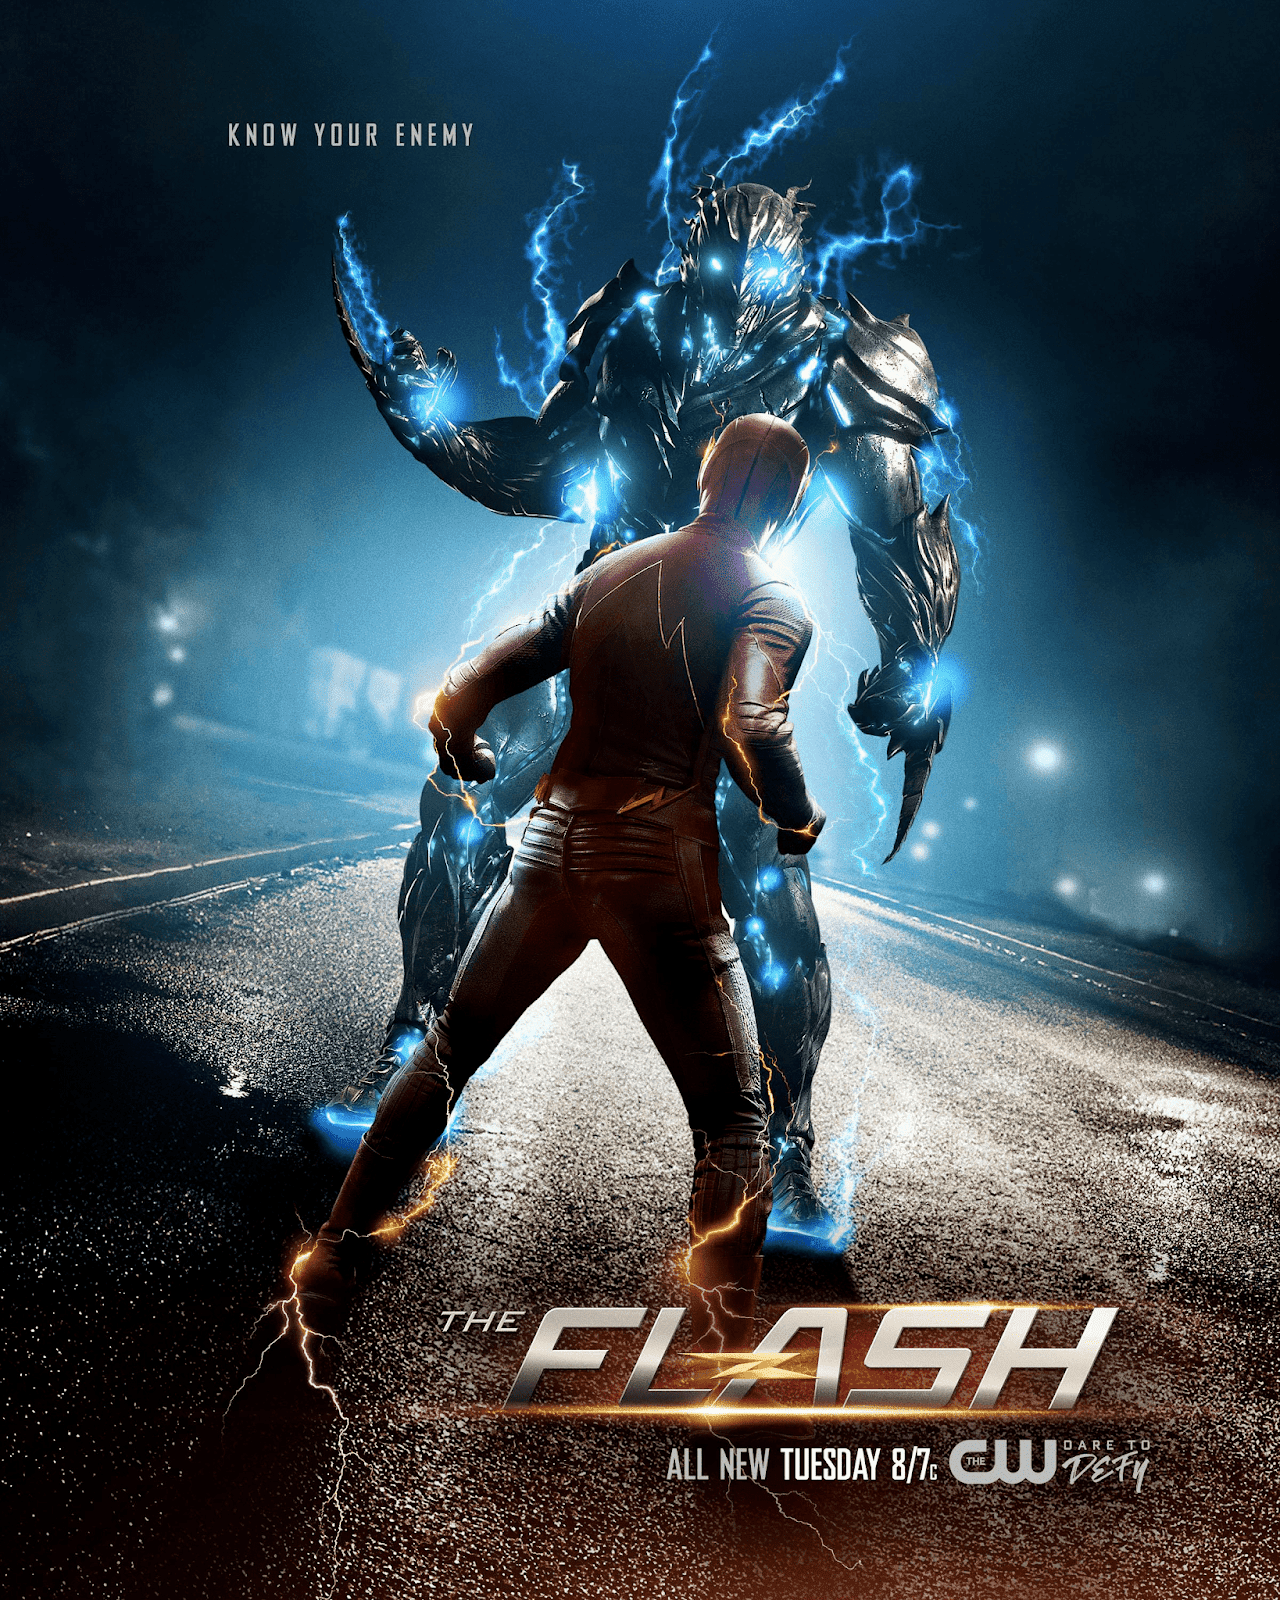 The Flash Season Three All Episodes Torrent Download [720p]